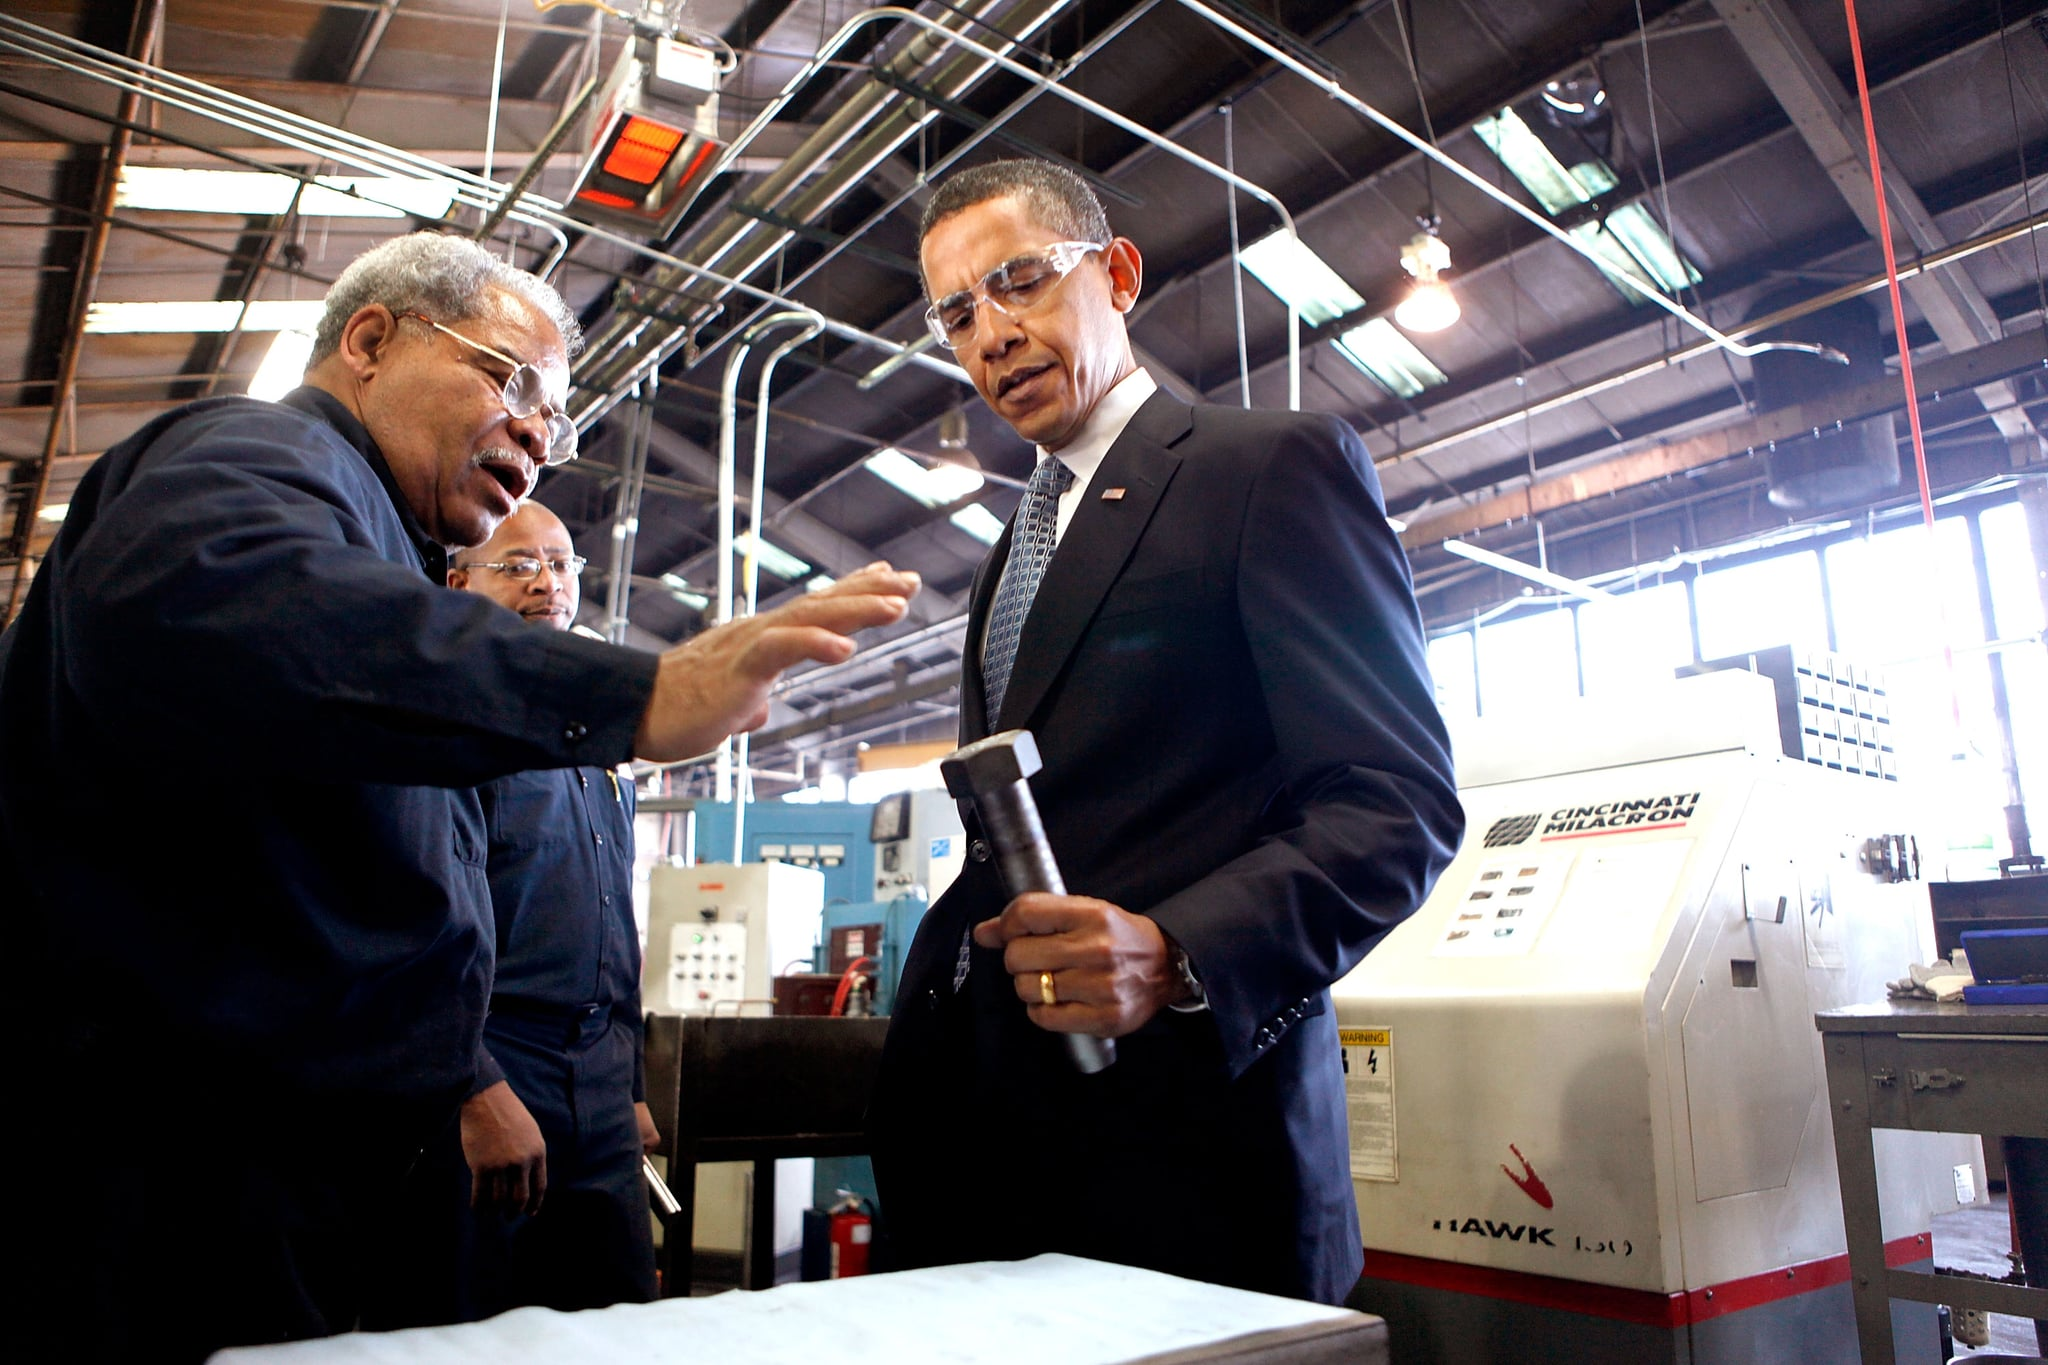 A worker shows Obama how he makes large bolts used for bridge construction.